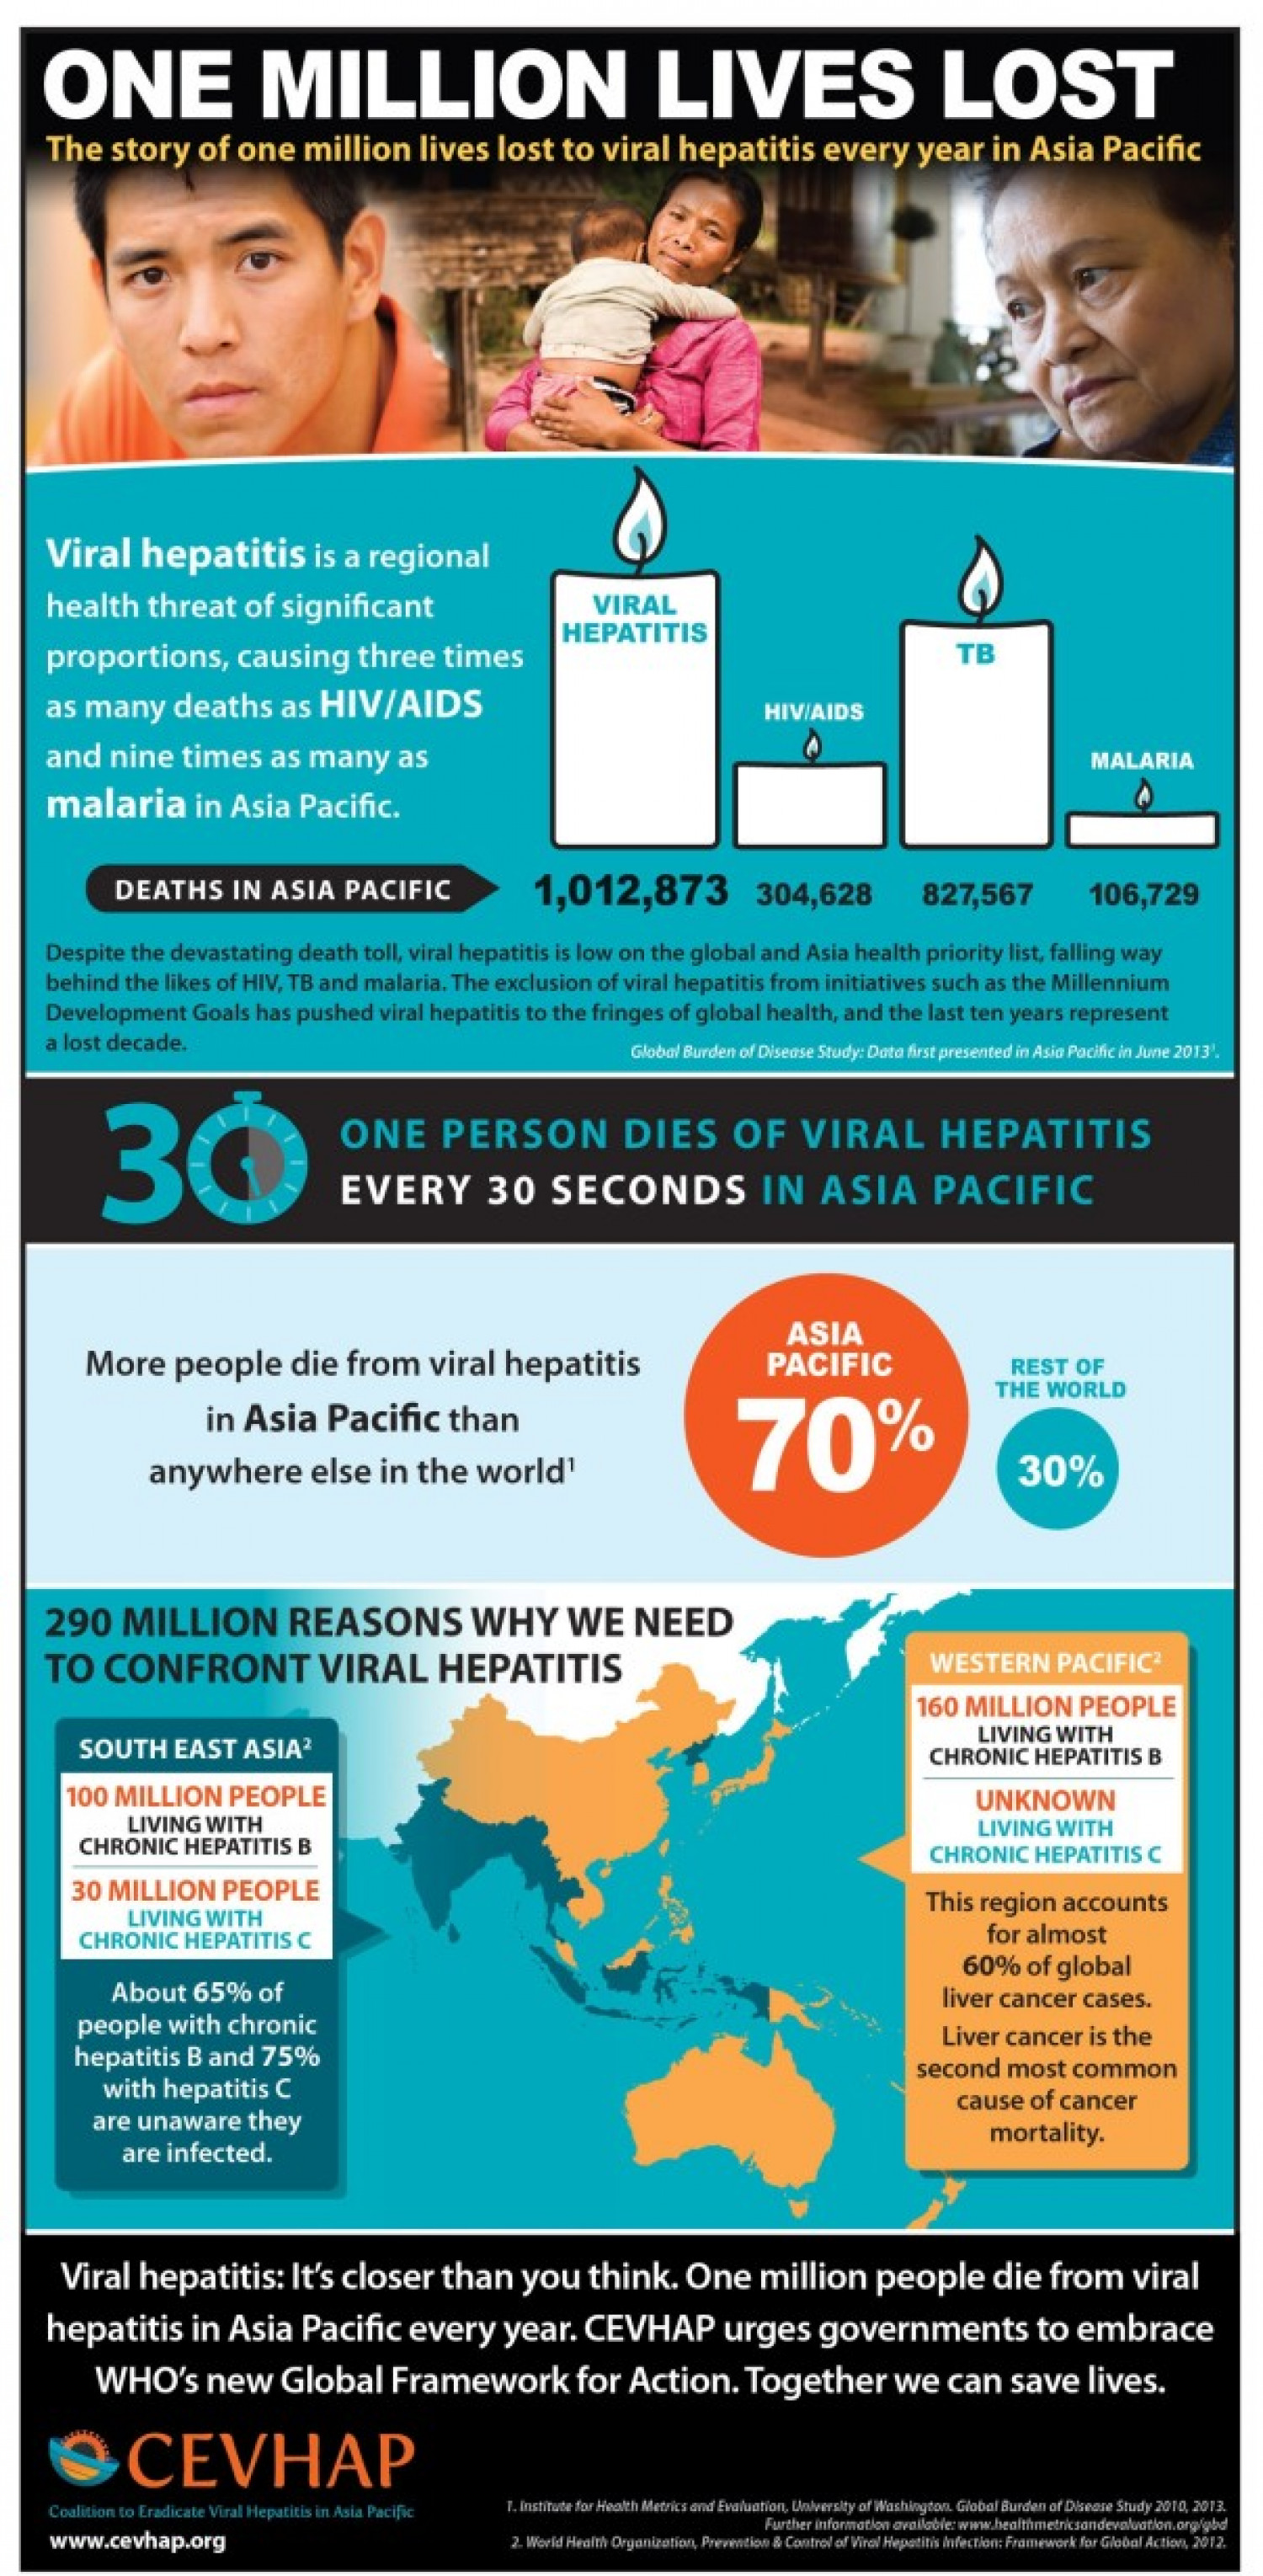 Hepatitis: One million lives lost Infographic